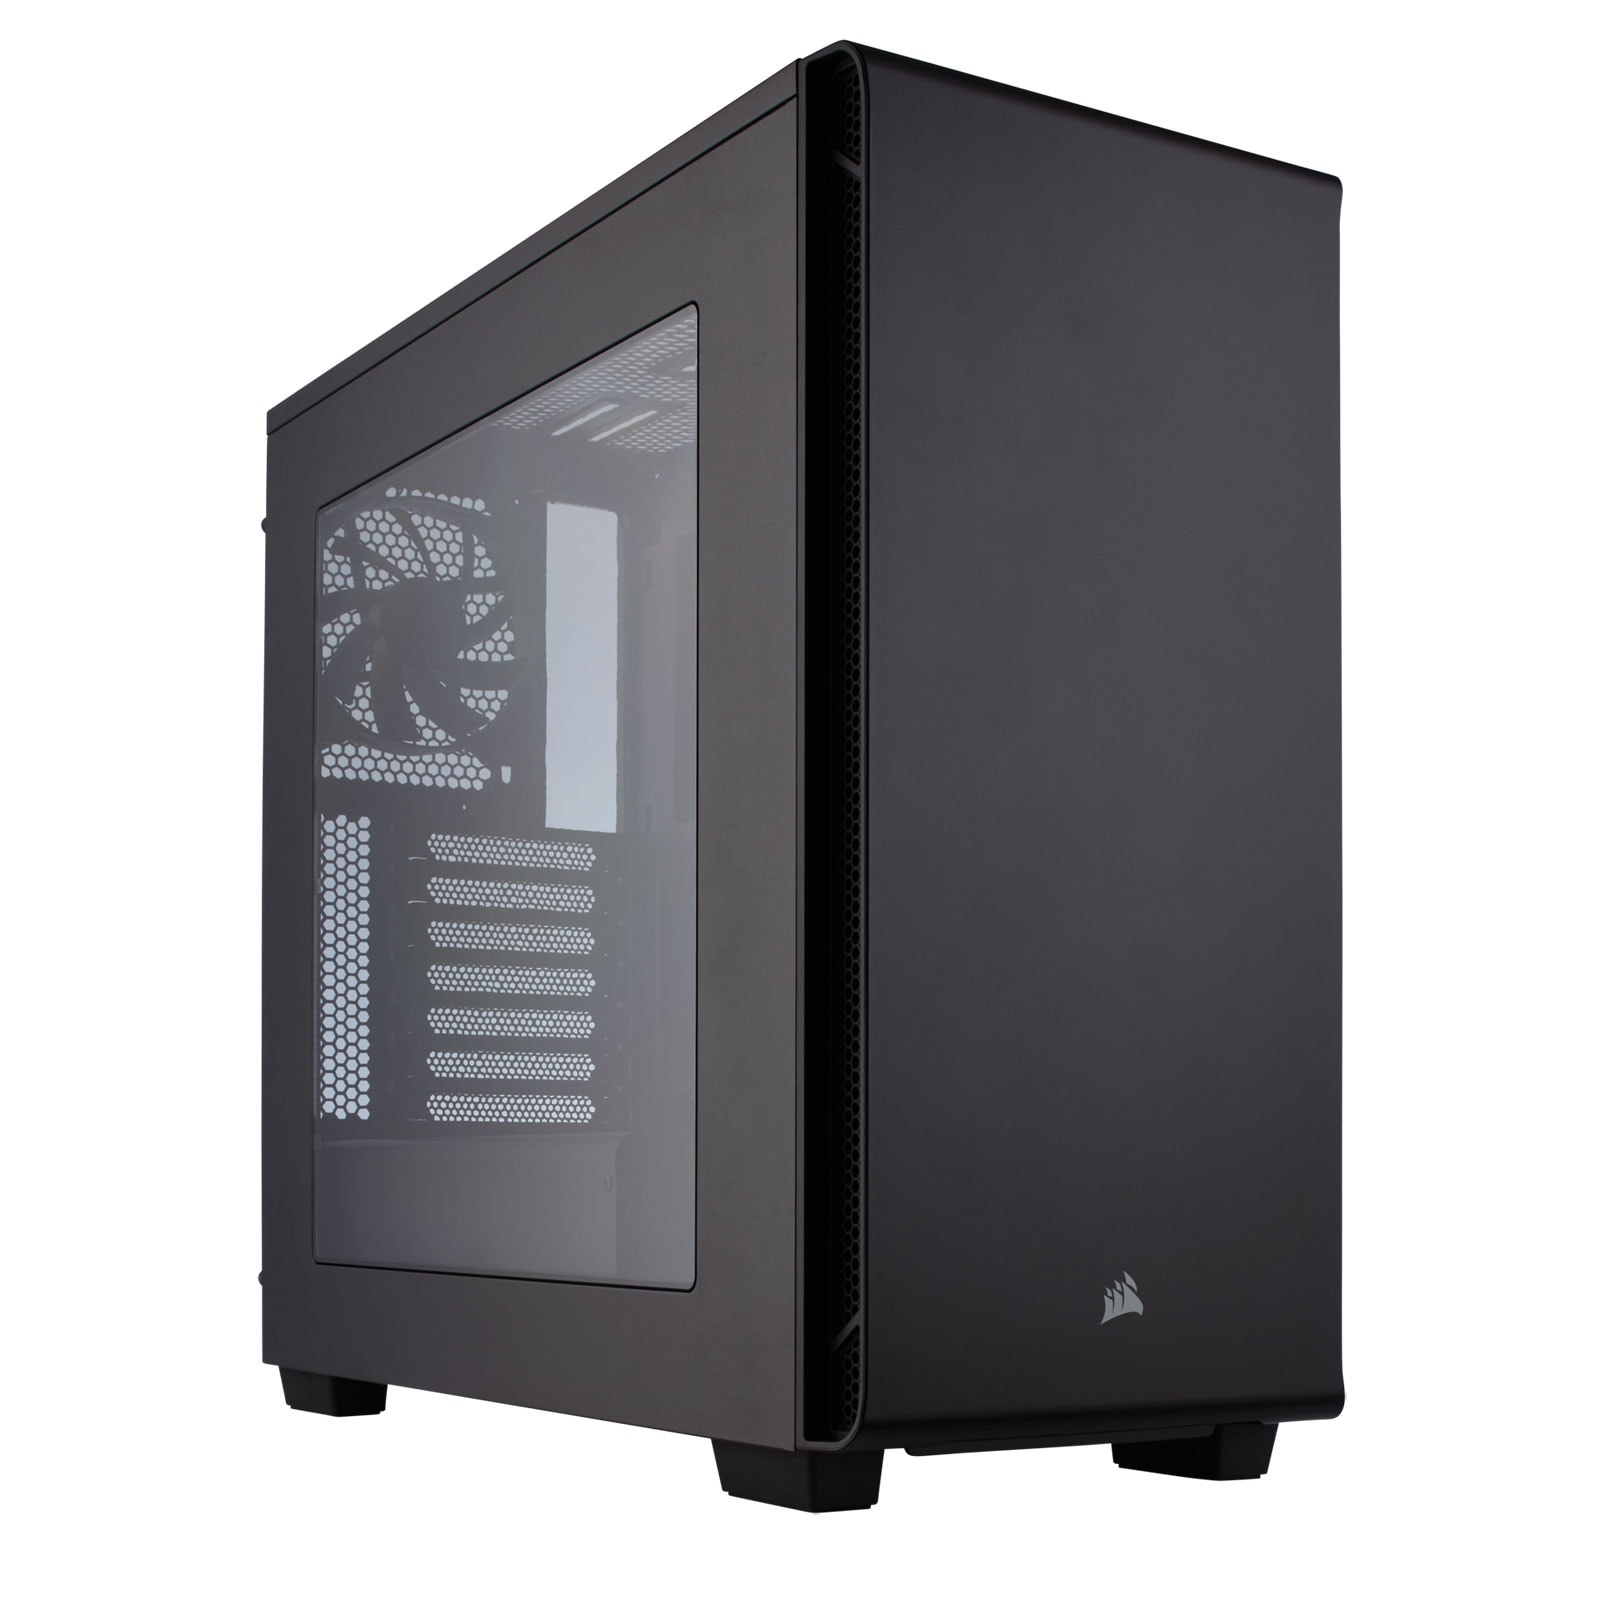 Corsair Carbide 270R Windowed CC-9011105-WW -MT/S.Alim/ATX Noir - Boîtier PC - 0